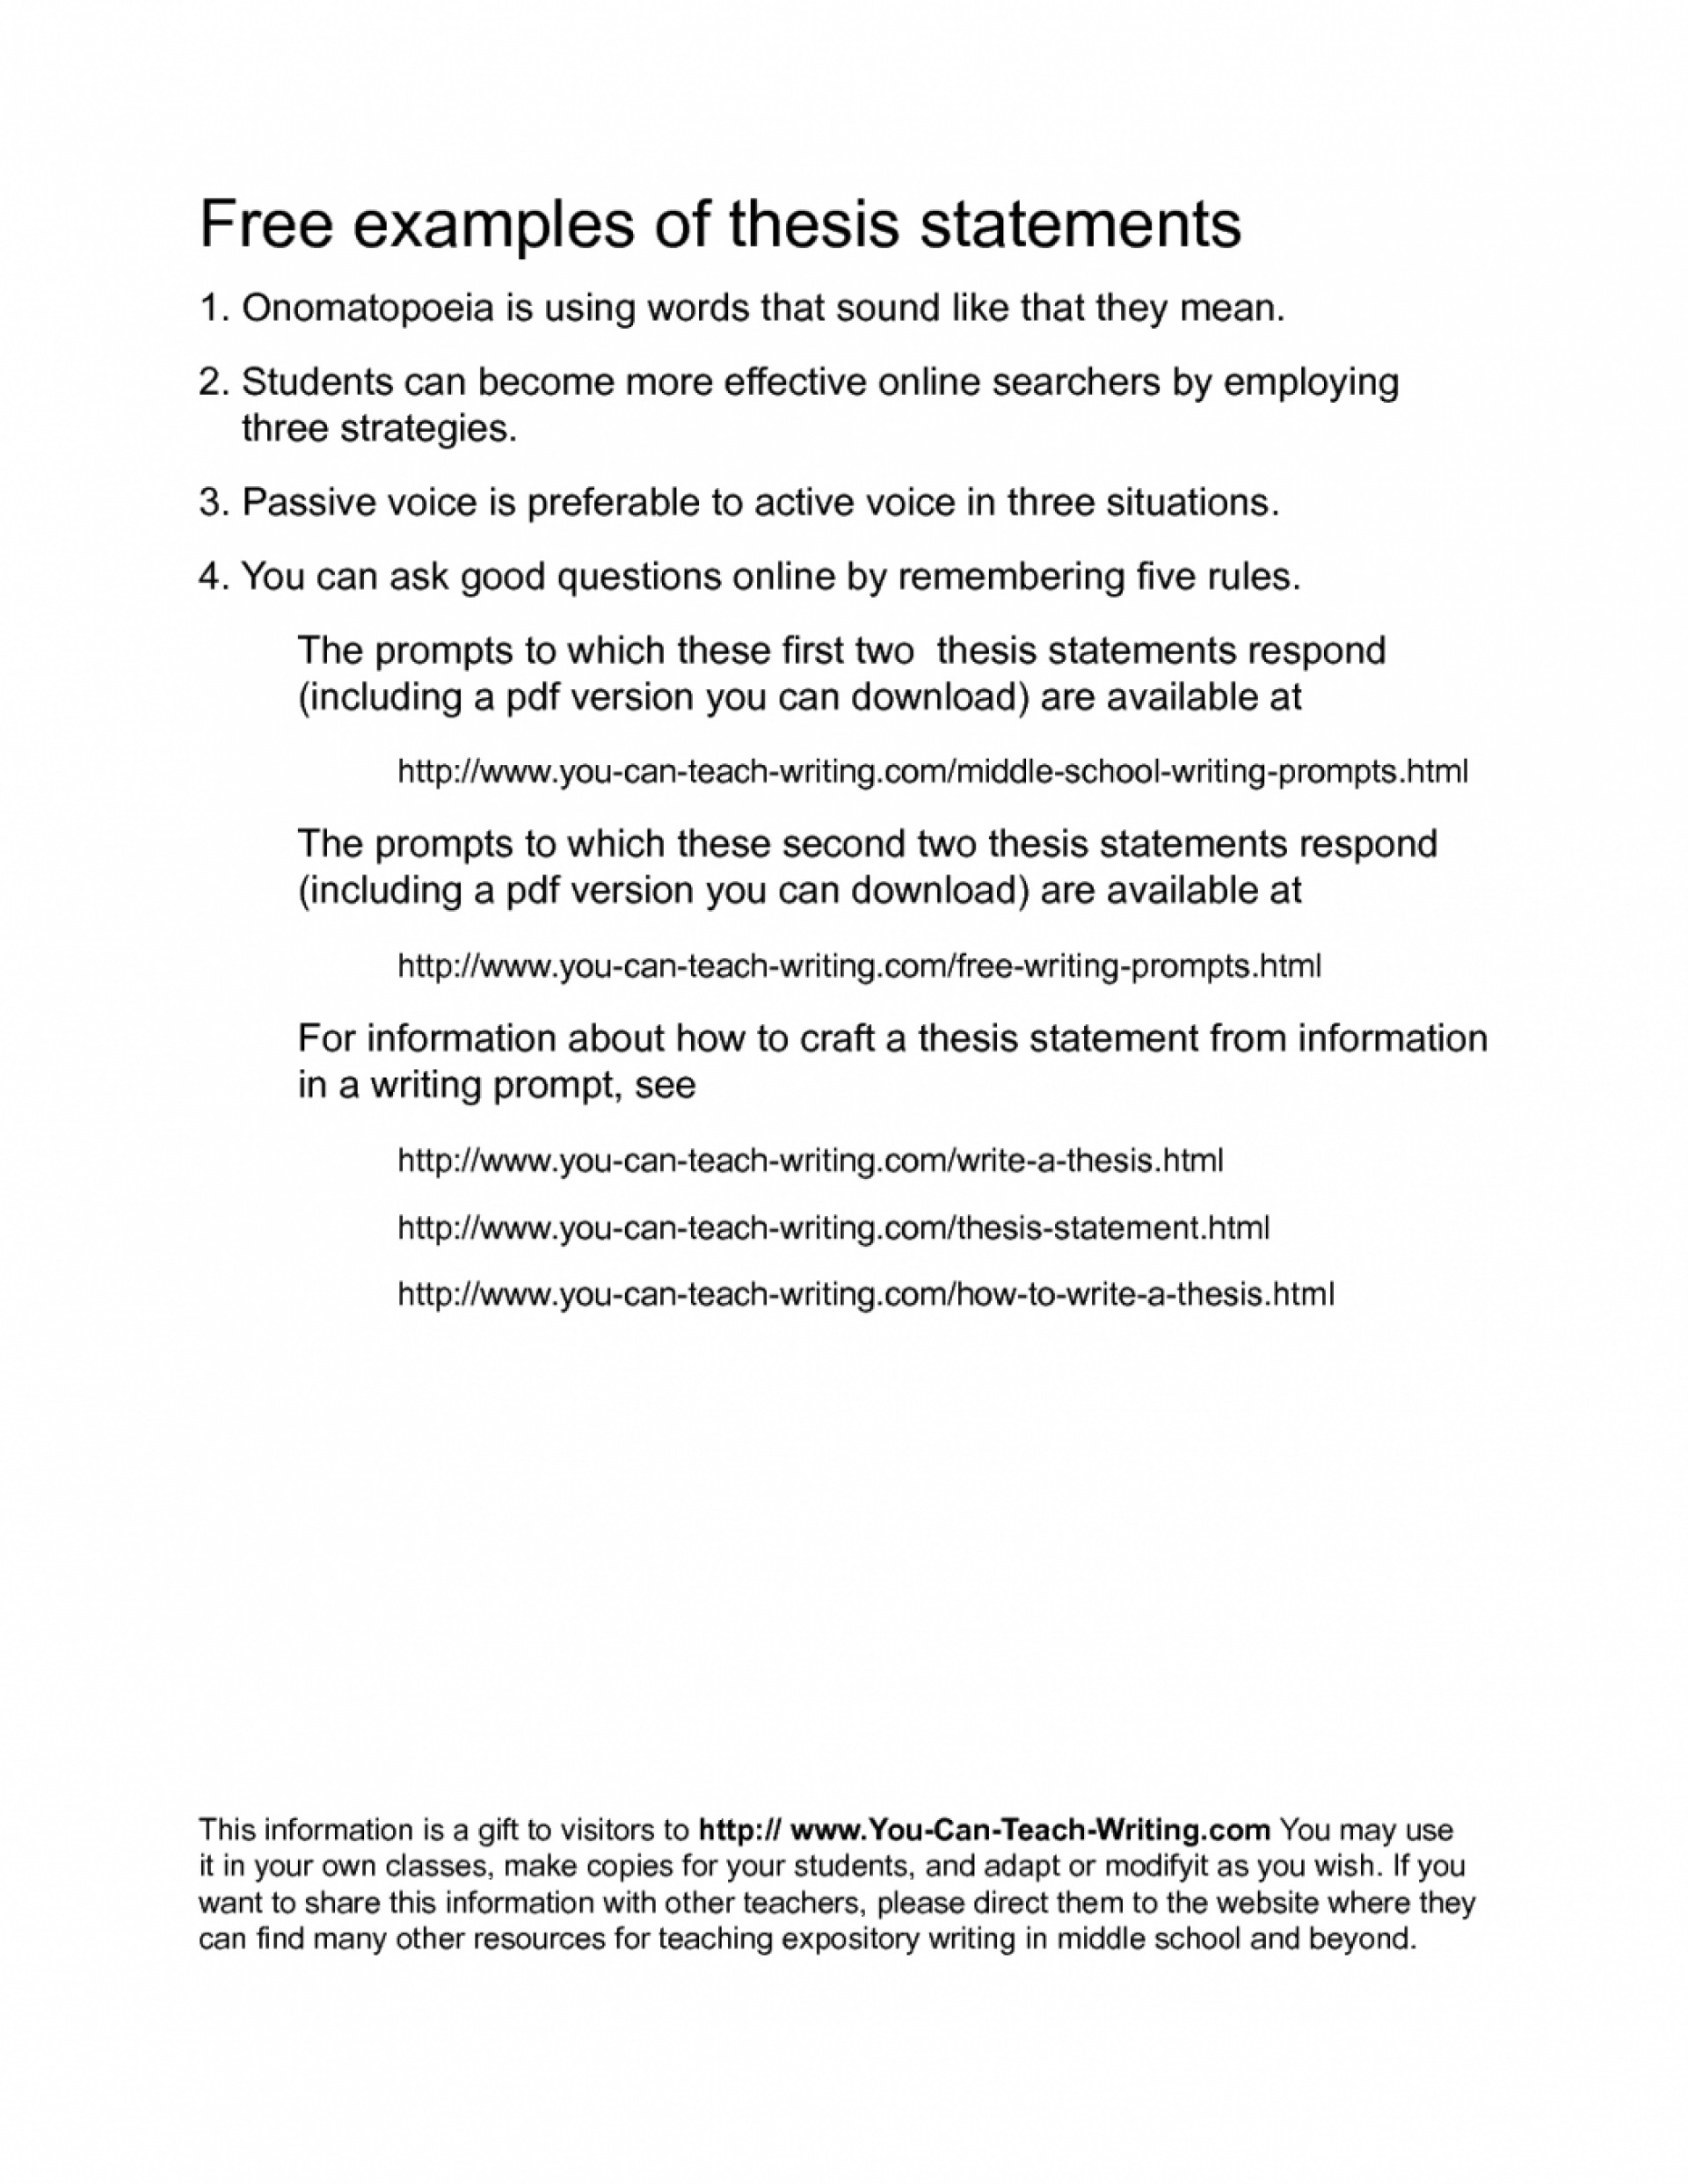 009 Essay Example Goodersuasive Topics For Middle School Thesis Abouturpose Of Statement Template Wwe Speech Uniforms Issues Education Rules Uniform Argumentative High 1048x1356 What Is The Beautiful Purpose A Persuasive Structure Format Brainly 1920